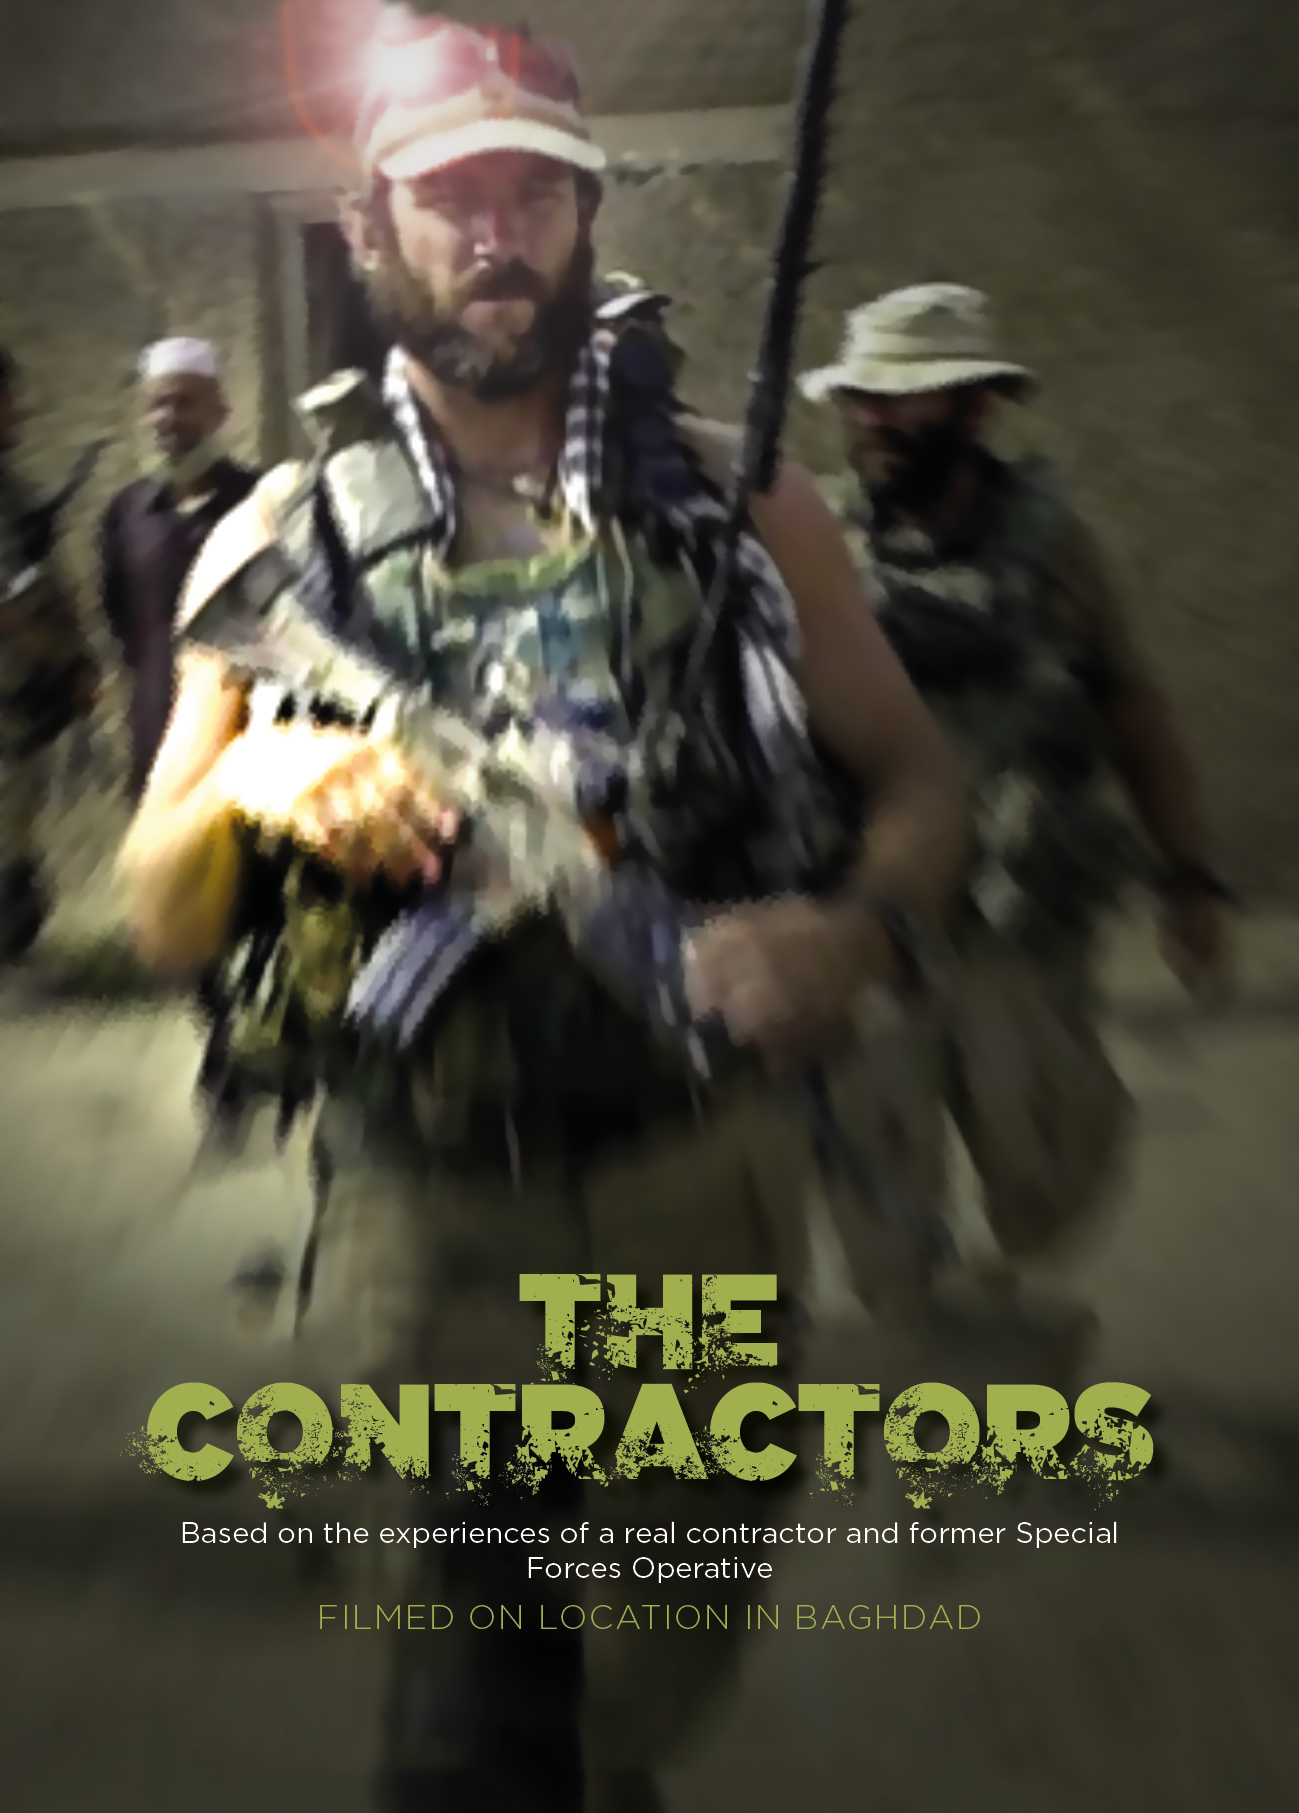 The Contractors Documentary Project